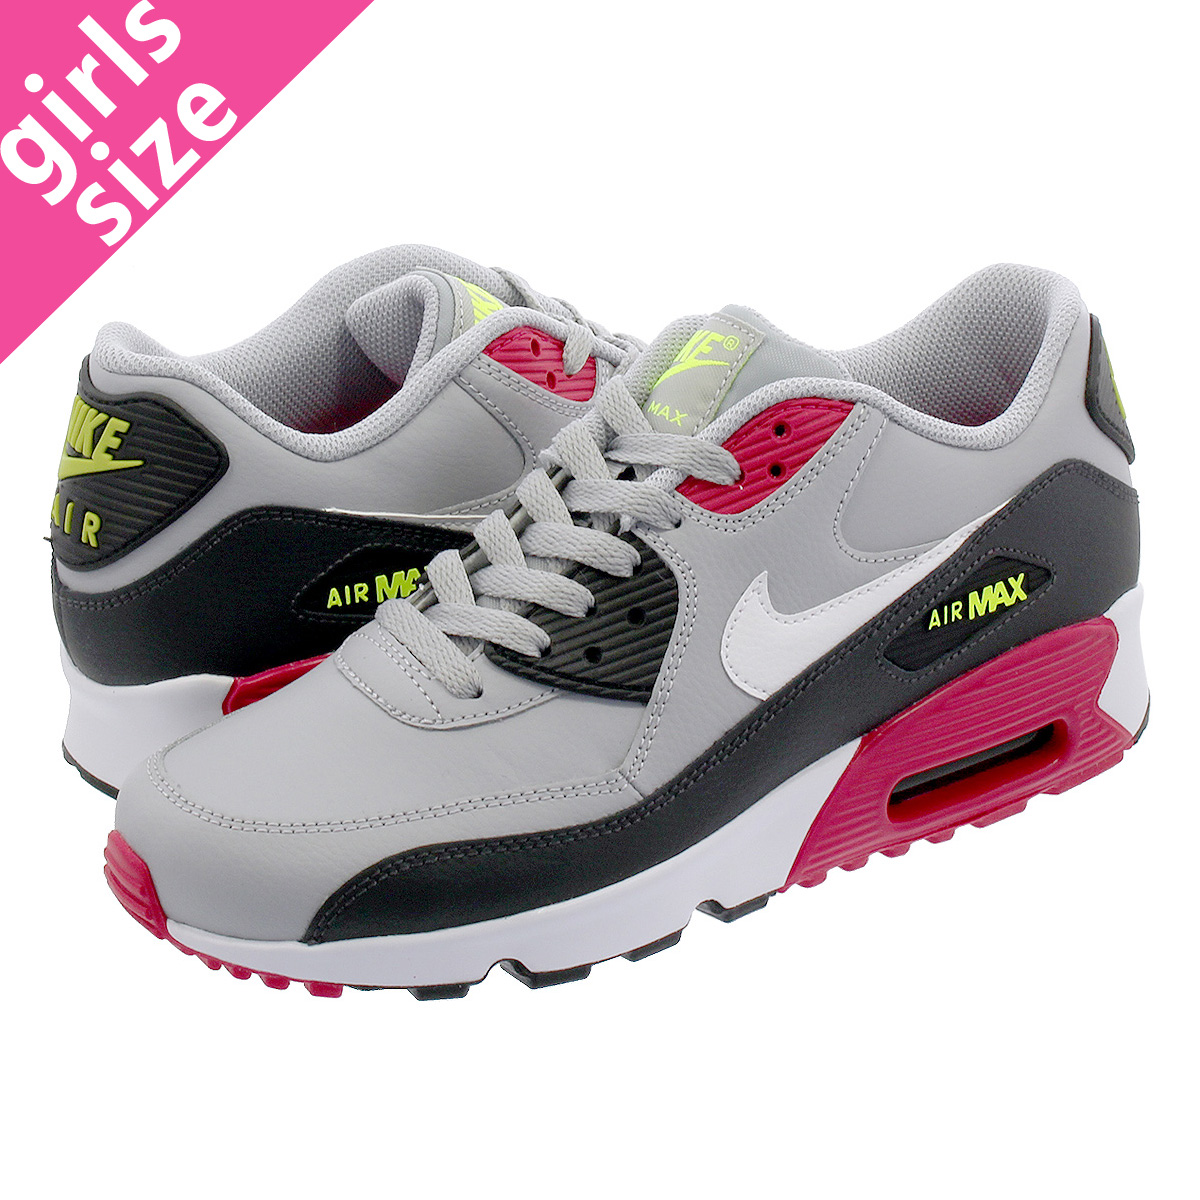 uk availability ed2e8 6b4f5 NIKE AIR MAX 90 LTR GS Kie Ney AMAX 90 leather GS WOLF GREY/RUSH PINK/VOLT  833,412-028